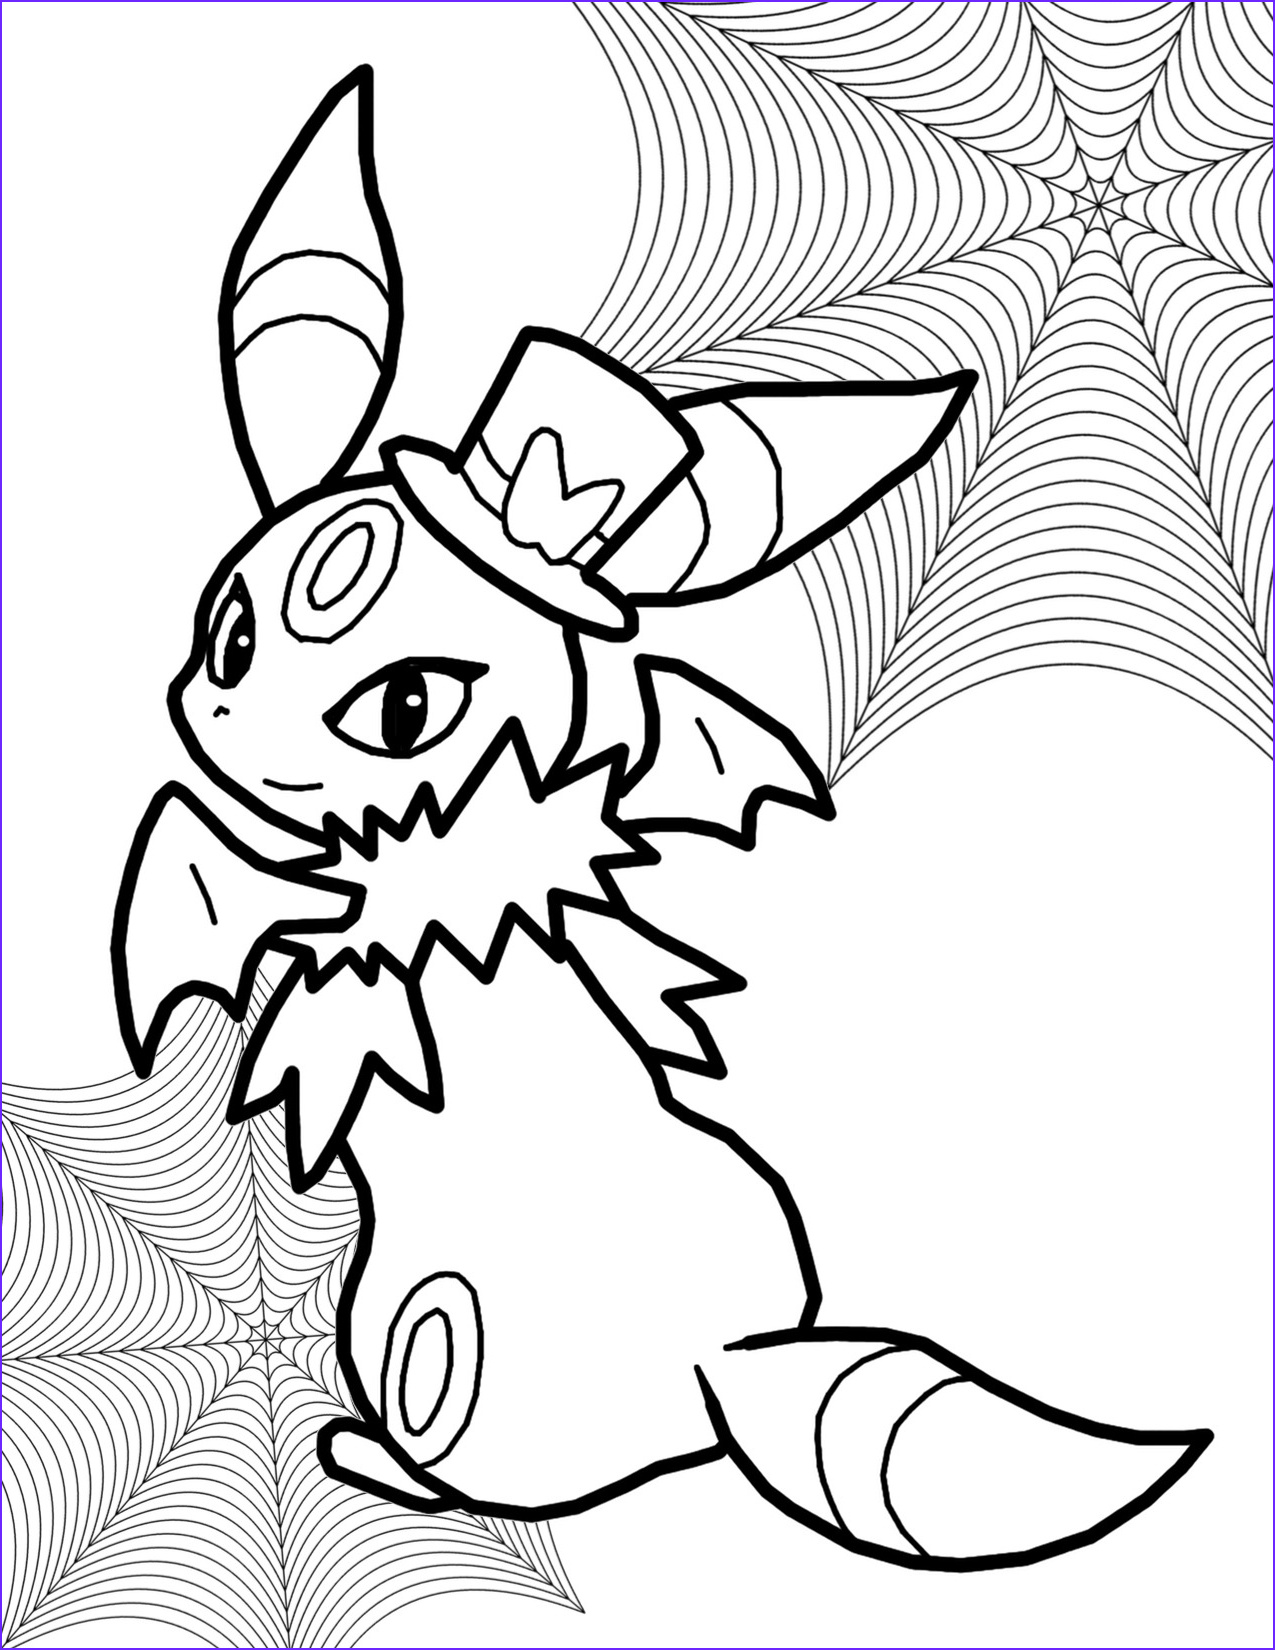 Halloween Coloring Book Page Unique Image Colormon • Here is the Last Of the Halloween Coloring